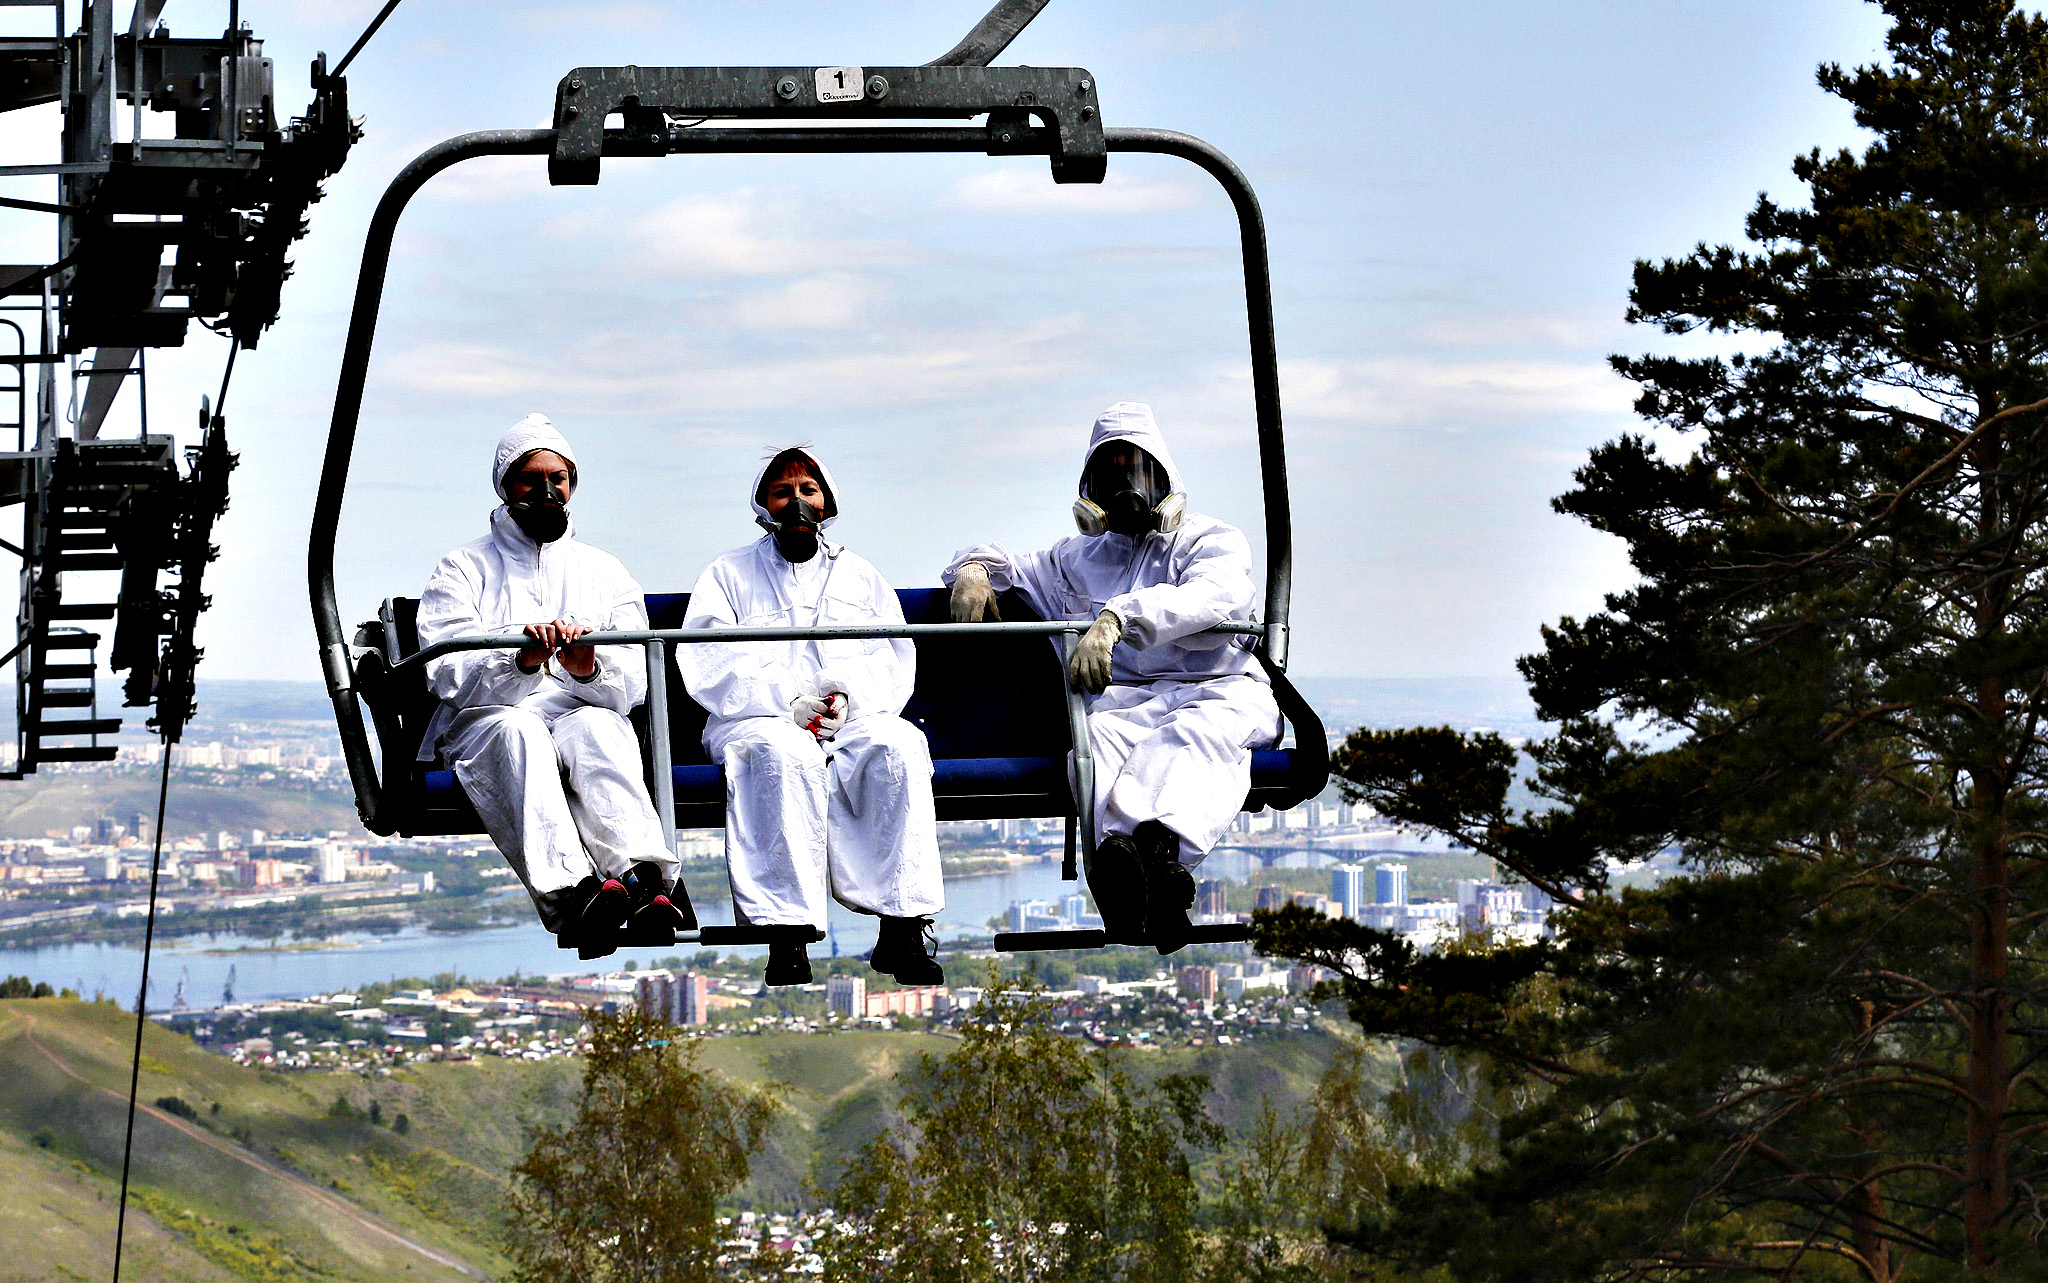 Employees of the Derate pest control company ride on a chair lift at the Bobrovy Log resort area in Taiga outside Russia's Siberian city of Krasnoyarsk...Employees of the Derate pest control company ride on a chair lift at the Bobrovy Log resort area in Taiga outside Russia's Siberian city of Krasnoyarsk, June 3, 2014.